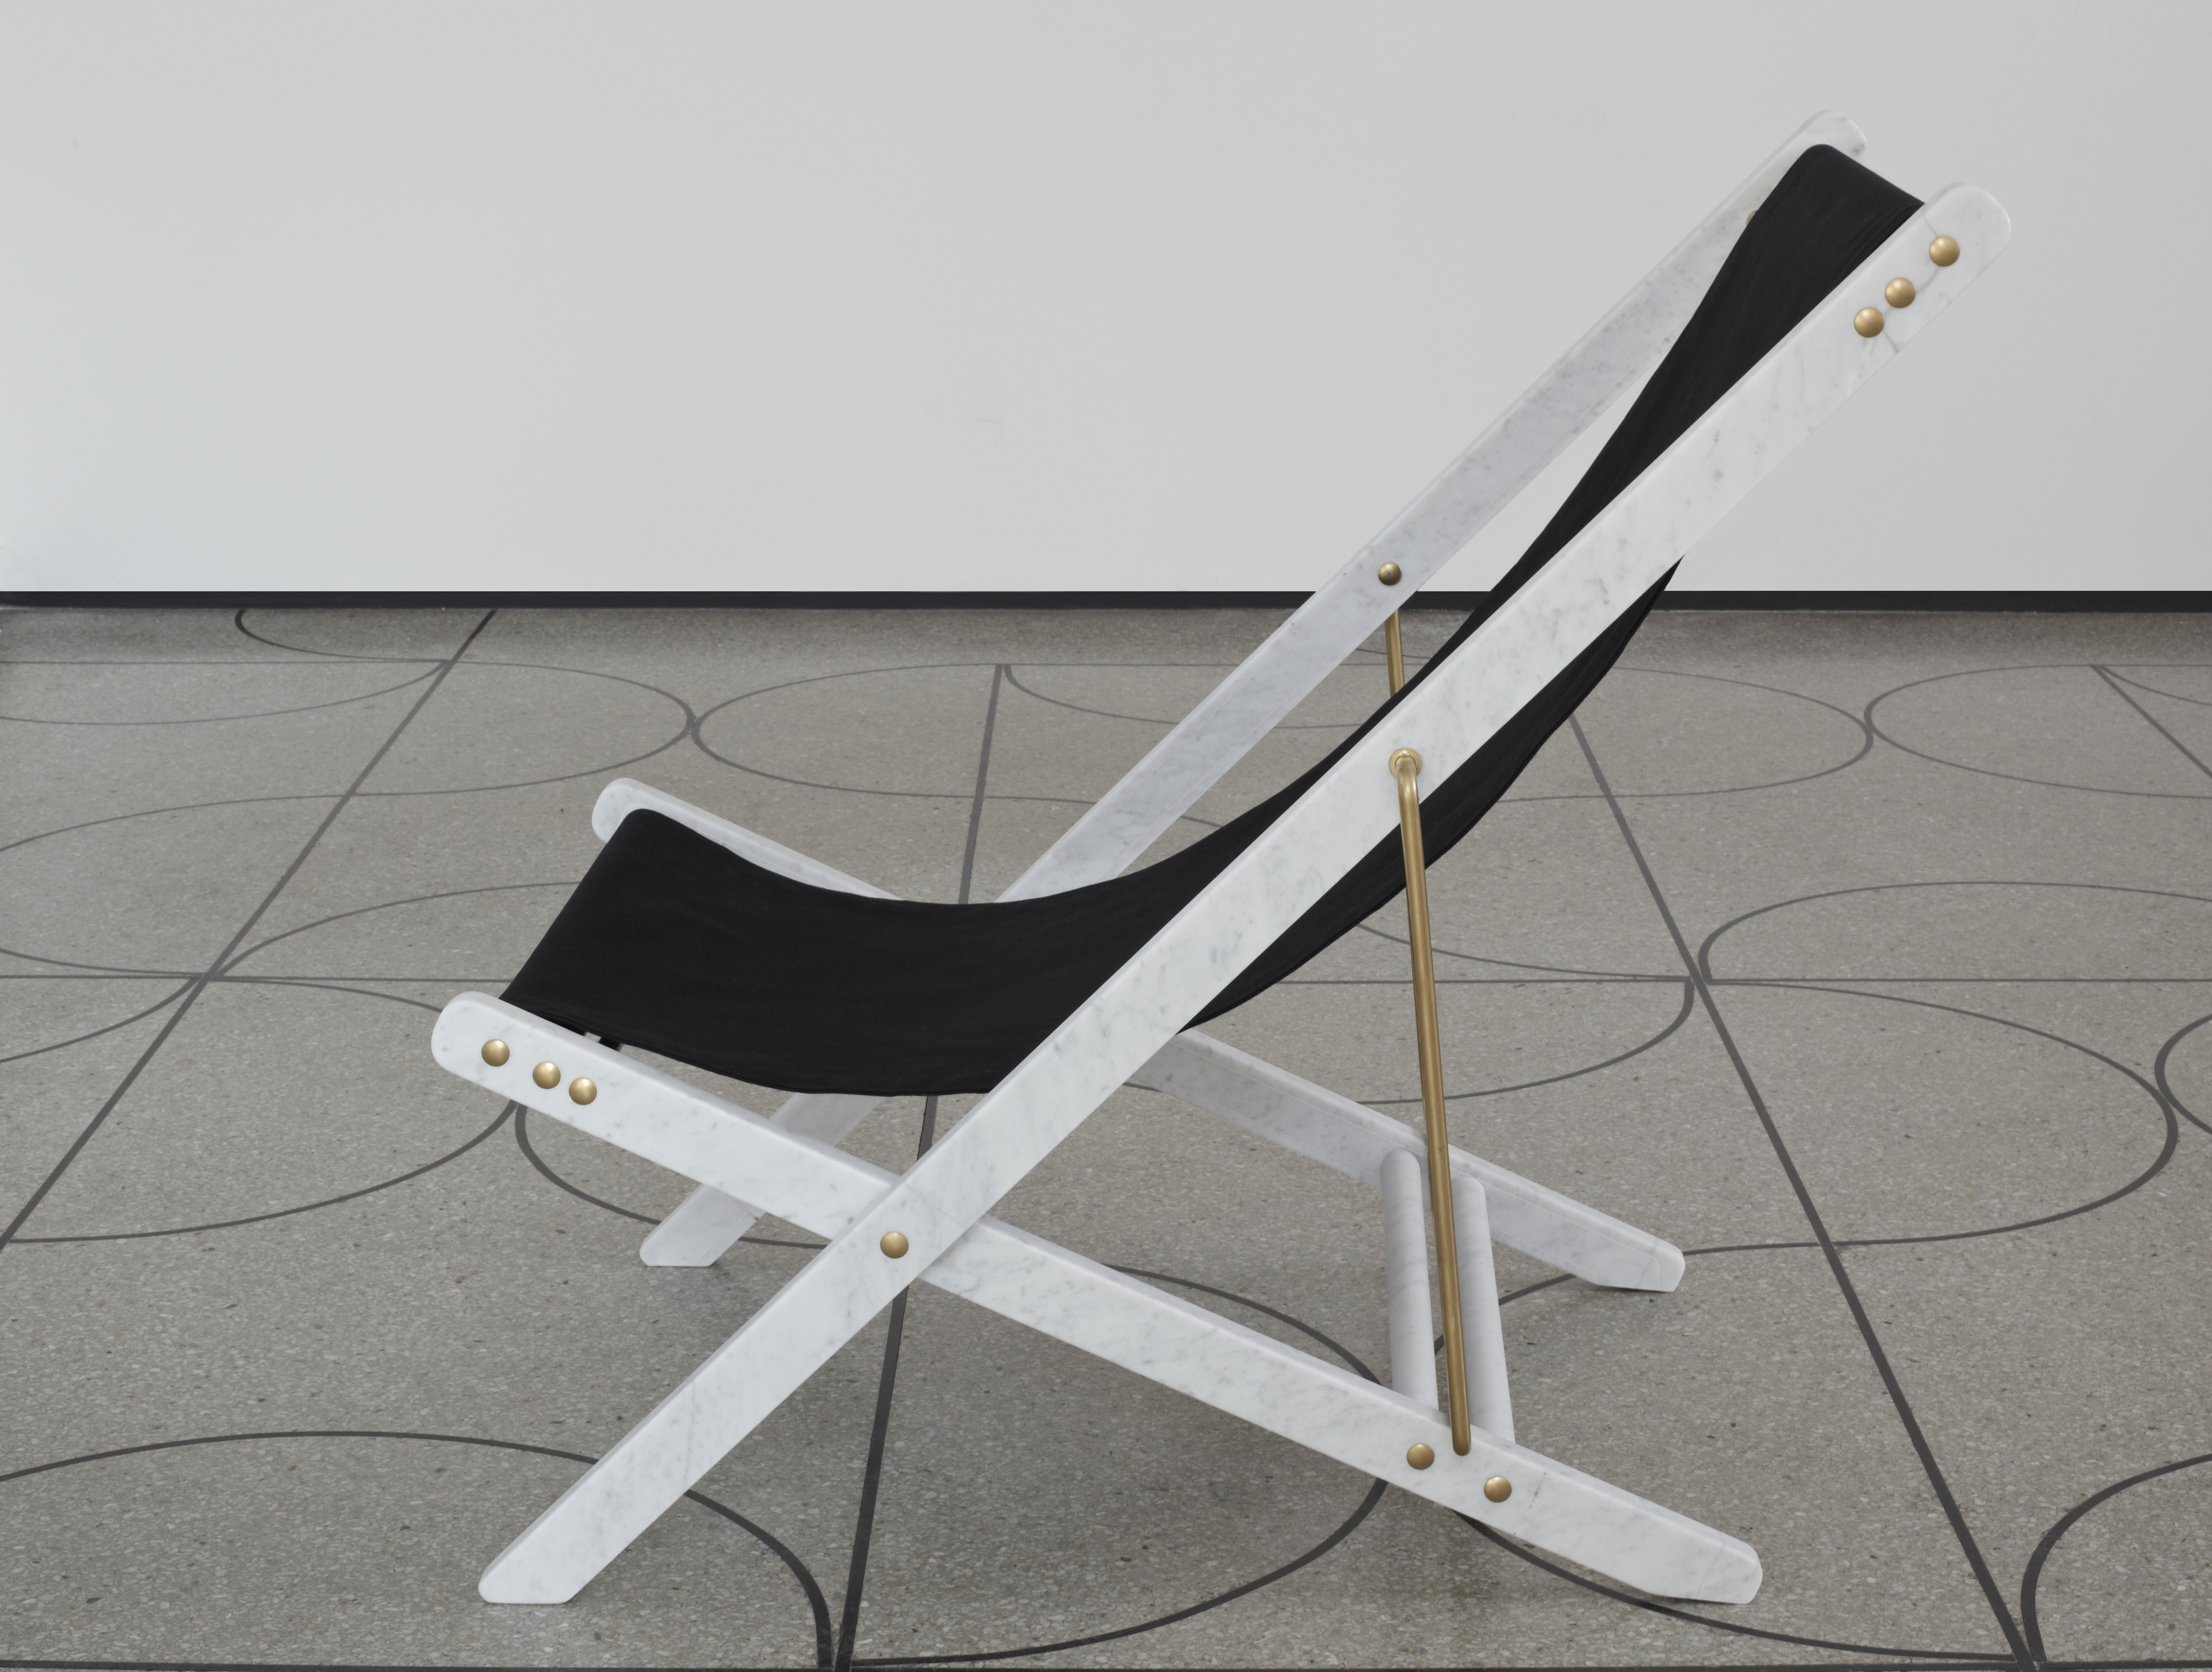 VT_Veronica Todisco_Adaptations_Deckchair 01.jpg